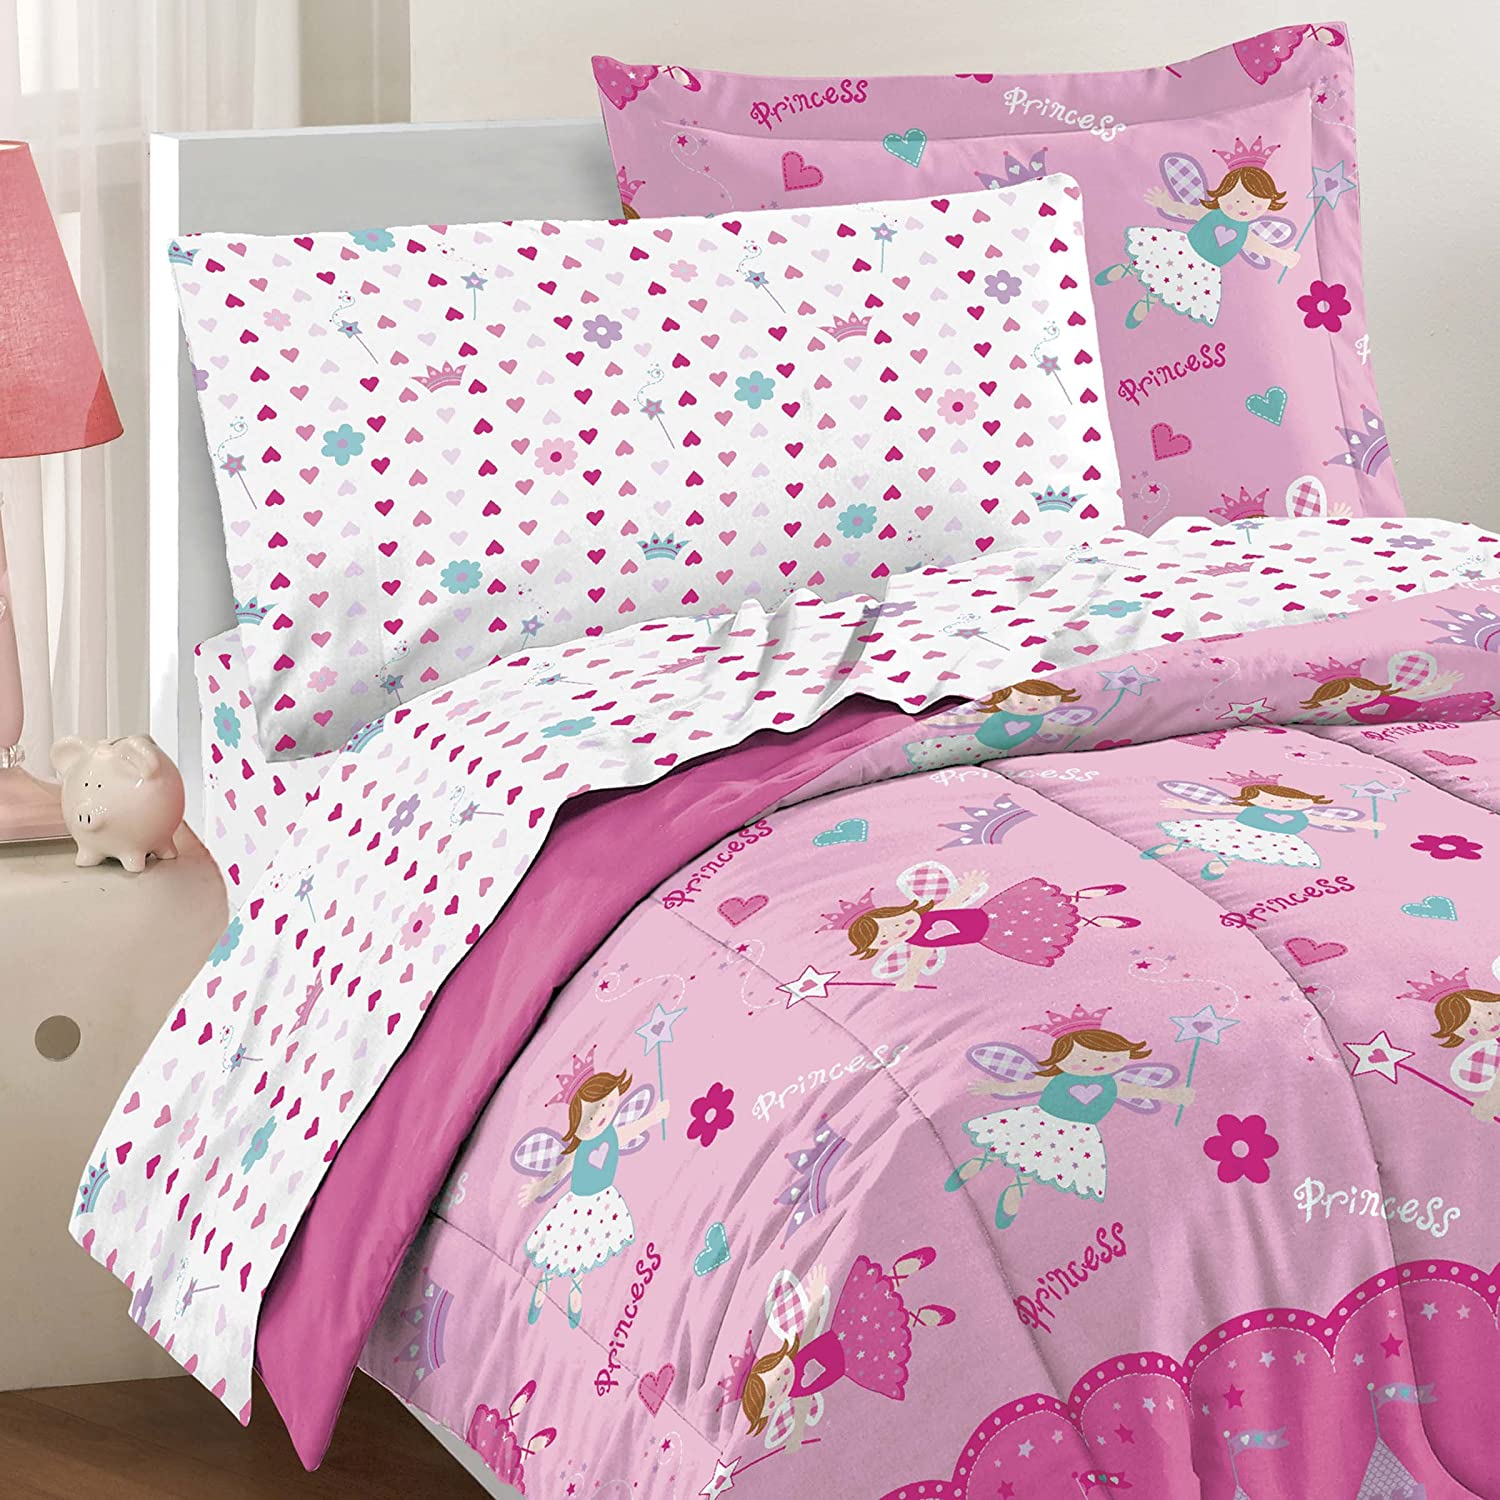 girl xl org gloriacalifornia toddler sets kohls cheap amazon twin pink set comforter hot